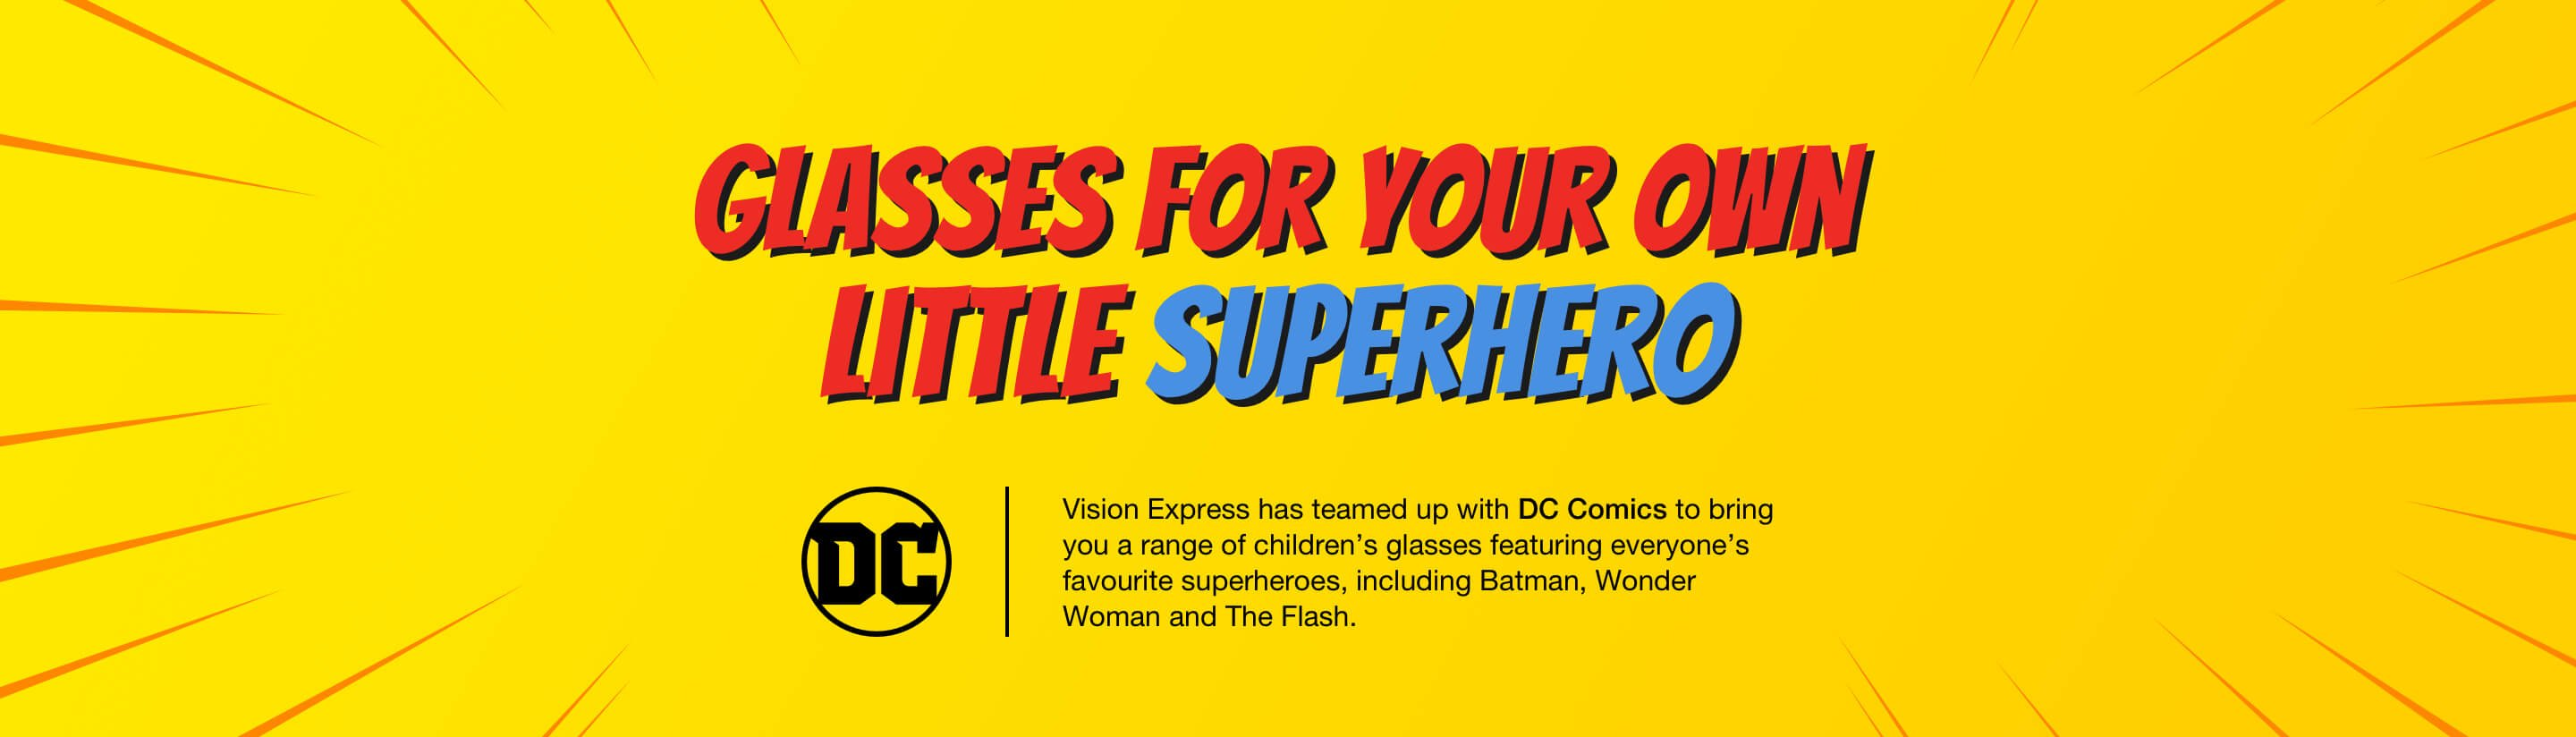 A yellow banner with the DC comics logo and red and white text.